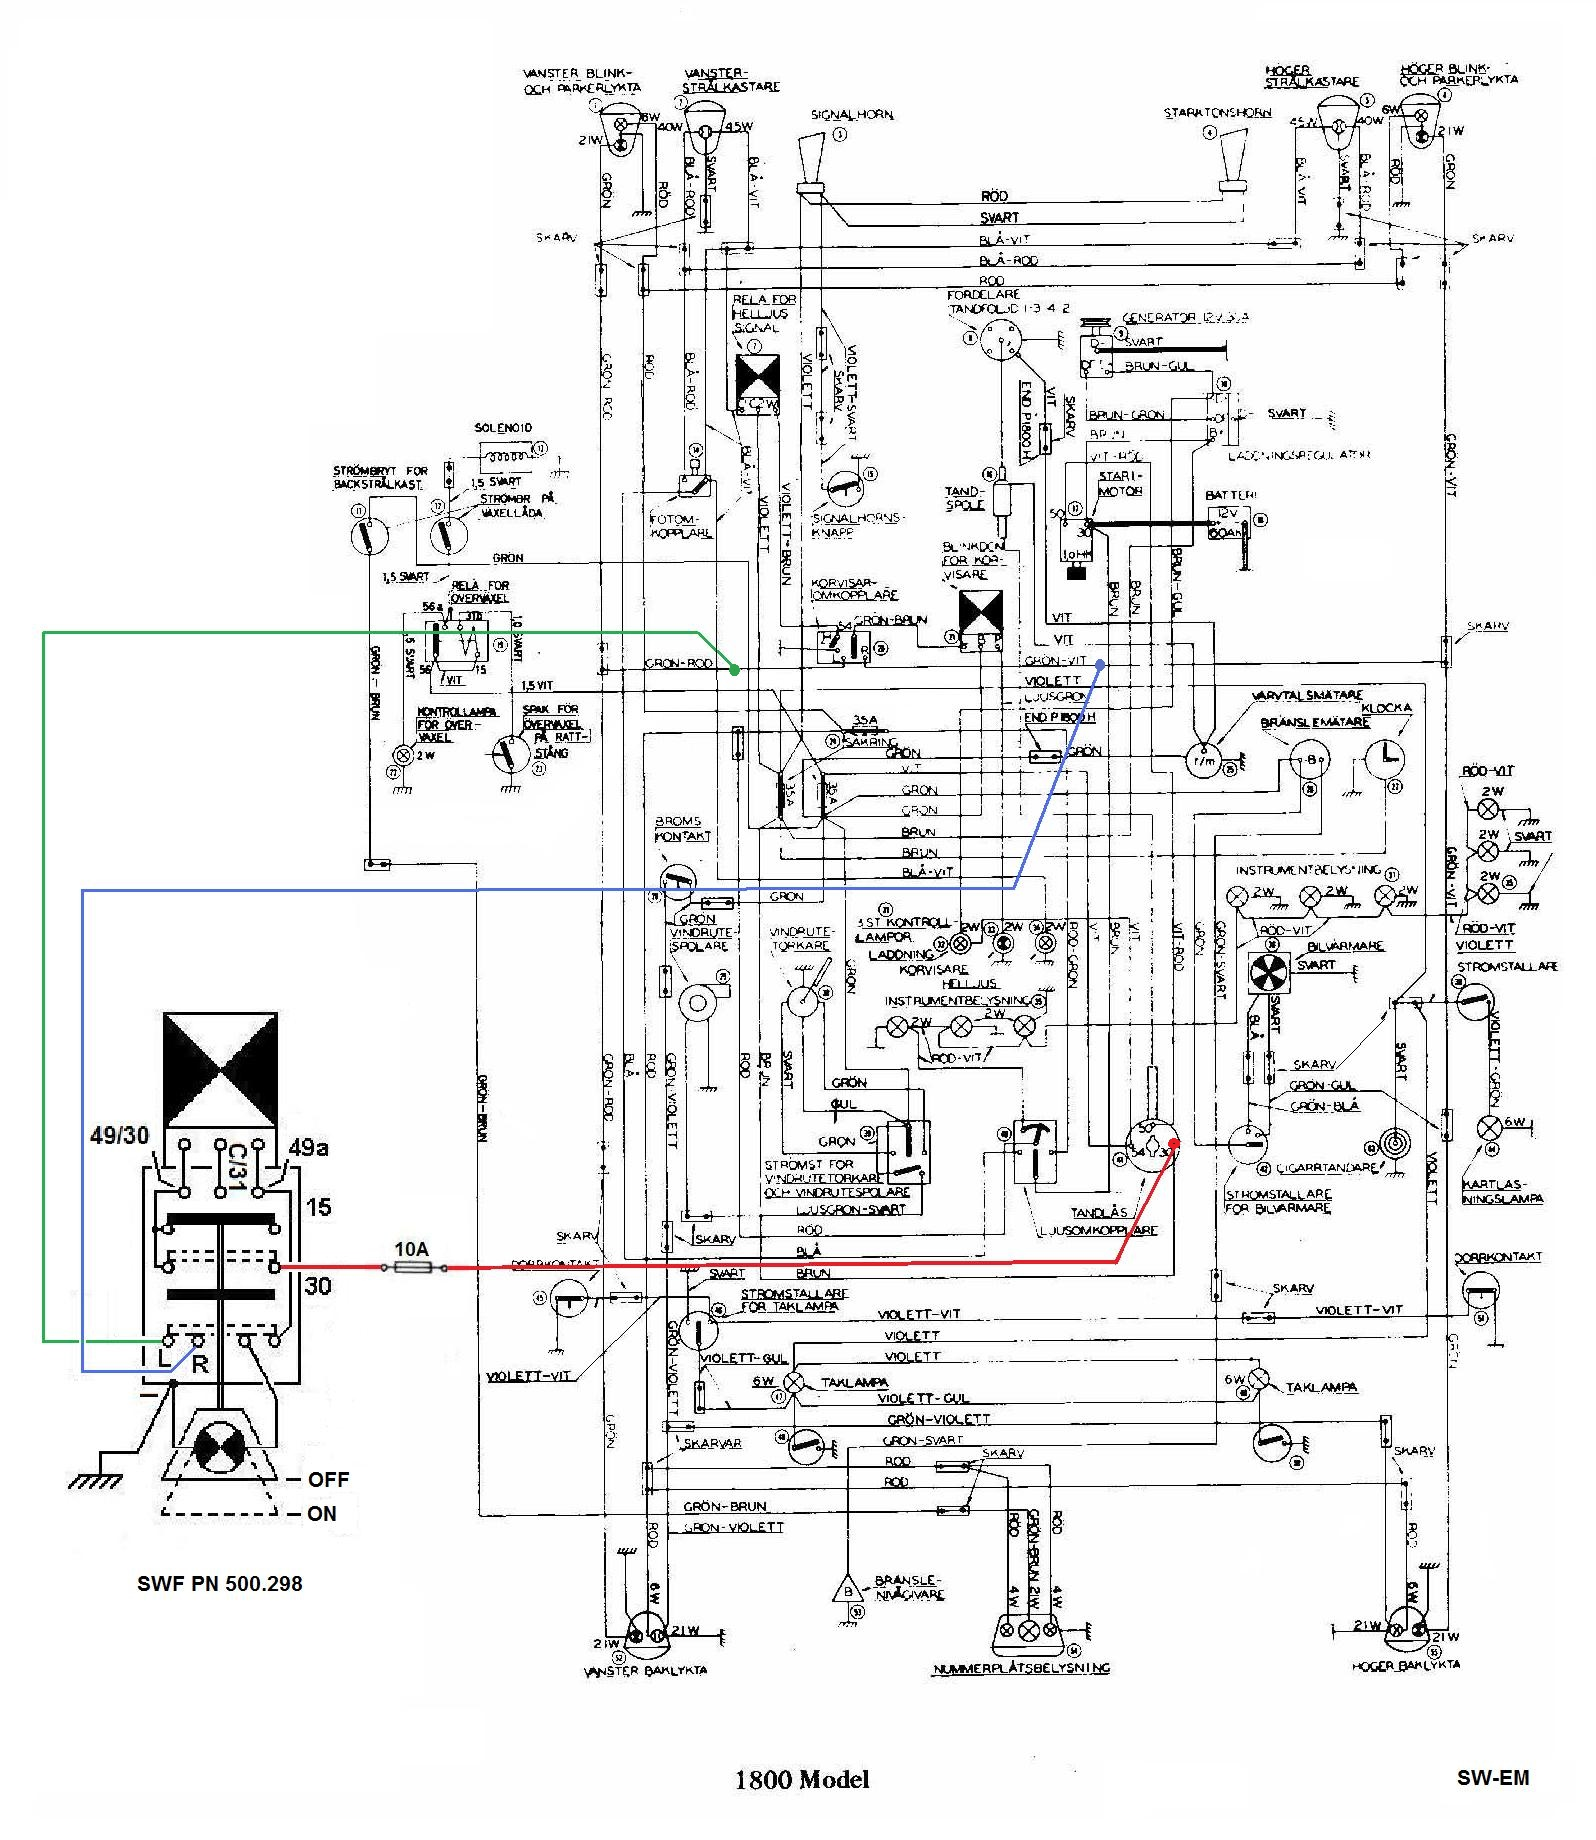 volvo 1974 142 wiring diagram